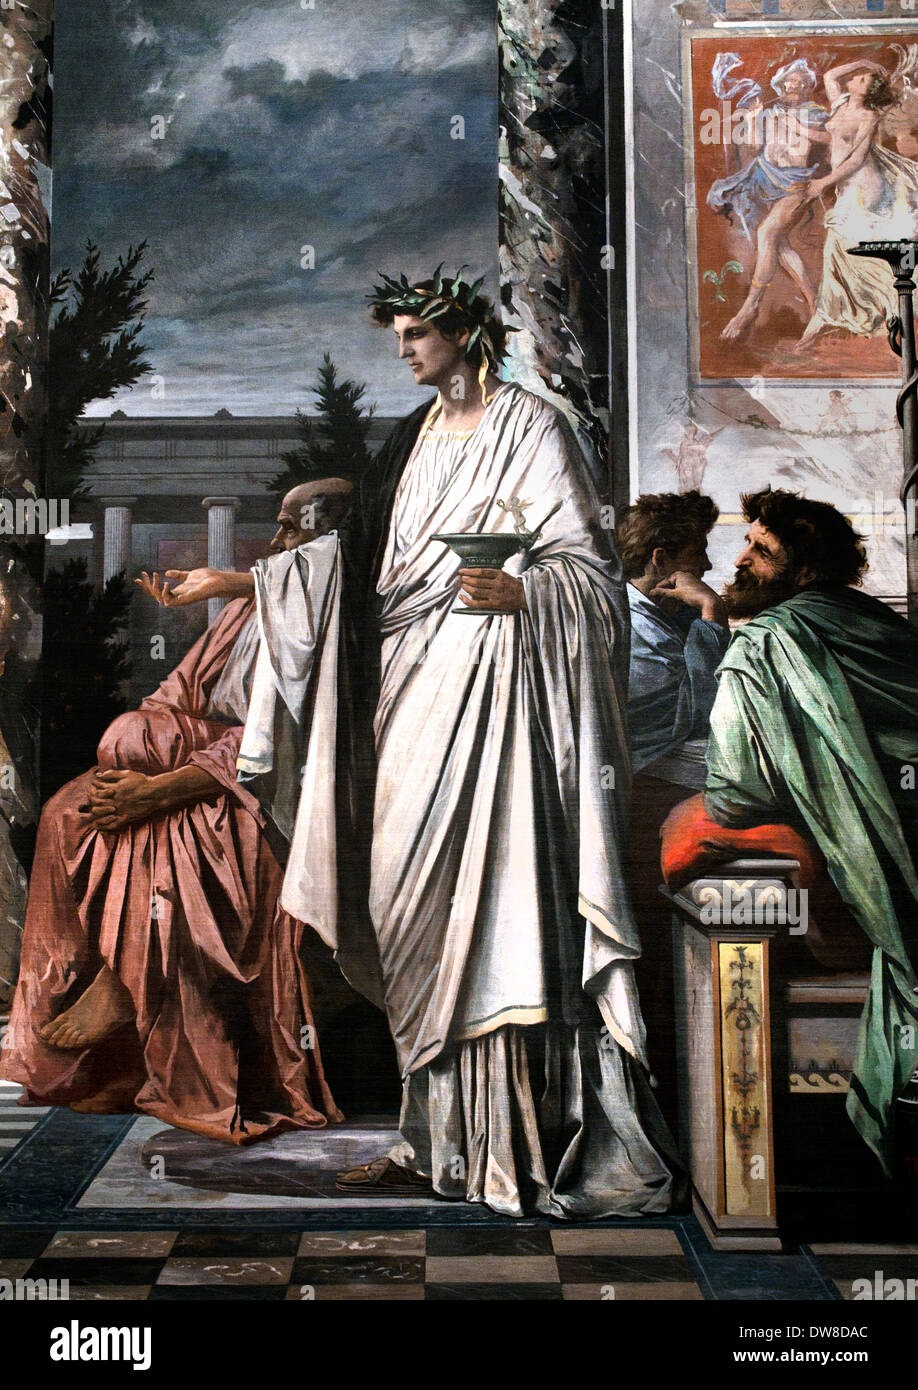 Detail - The Banquet of Plato 1869 Anselm Feuerbach 1829 - 1880 ( Greek philosopher in Classical Greece ) German Germany - Stock Image